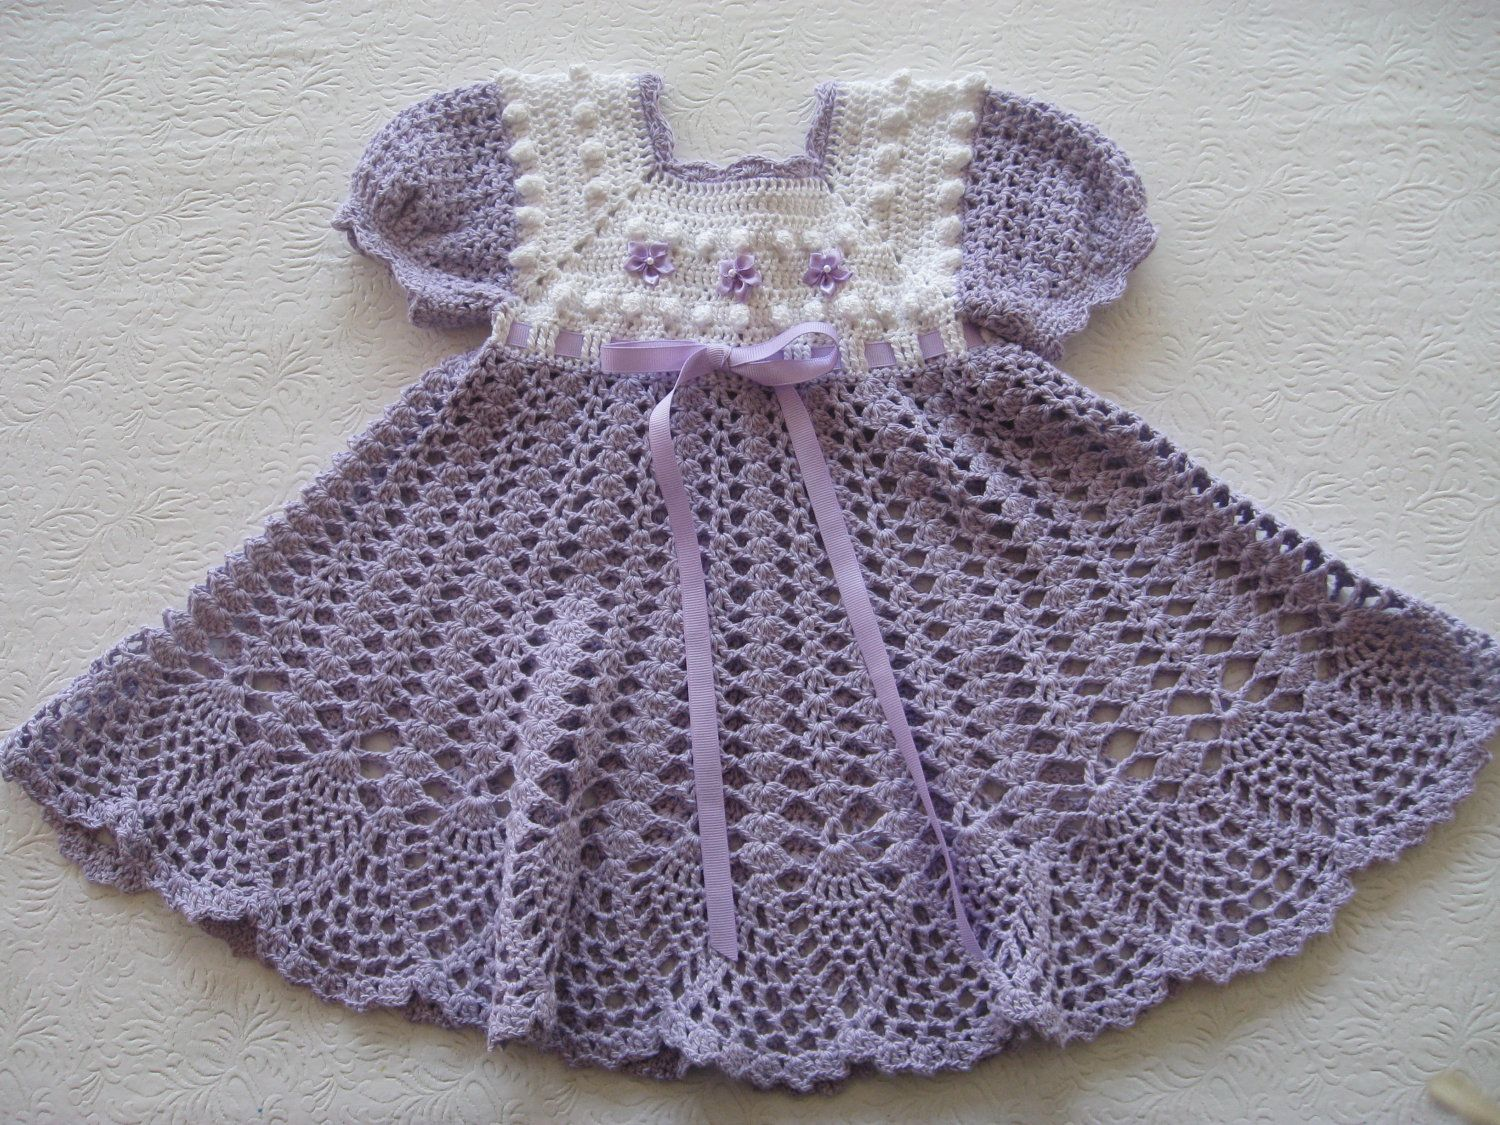 Find great deals on eBay for girls dresses. Shop with confidence. Skip to main content. eBay: Shop by category. Shop by category. Enter your search keyword USA Toddler Kids Baby Girls Princess Dress Pageant Party Wedding Dresses res. Brand New. $ to $ Buy It Now. Free Shipping.